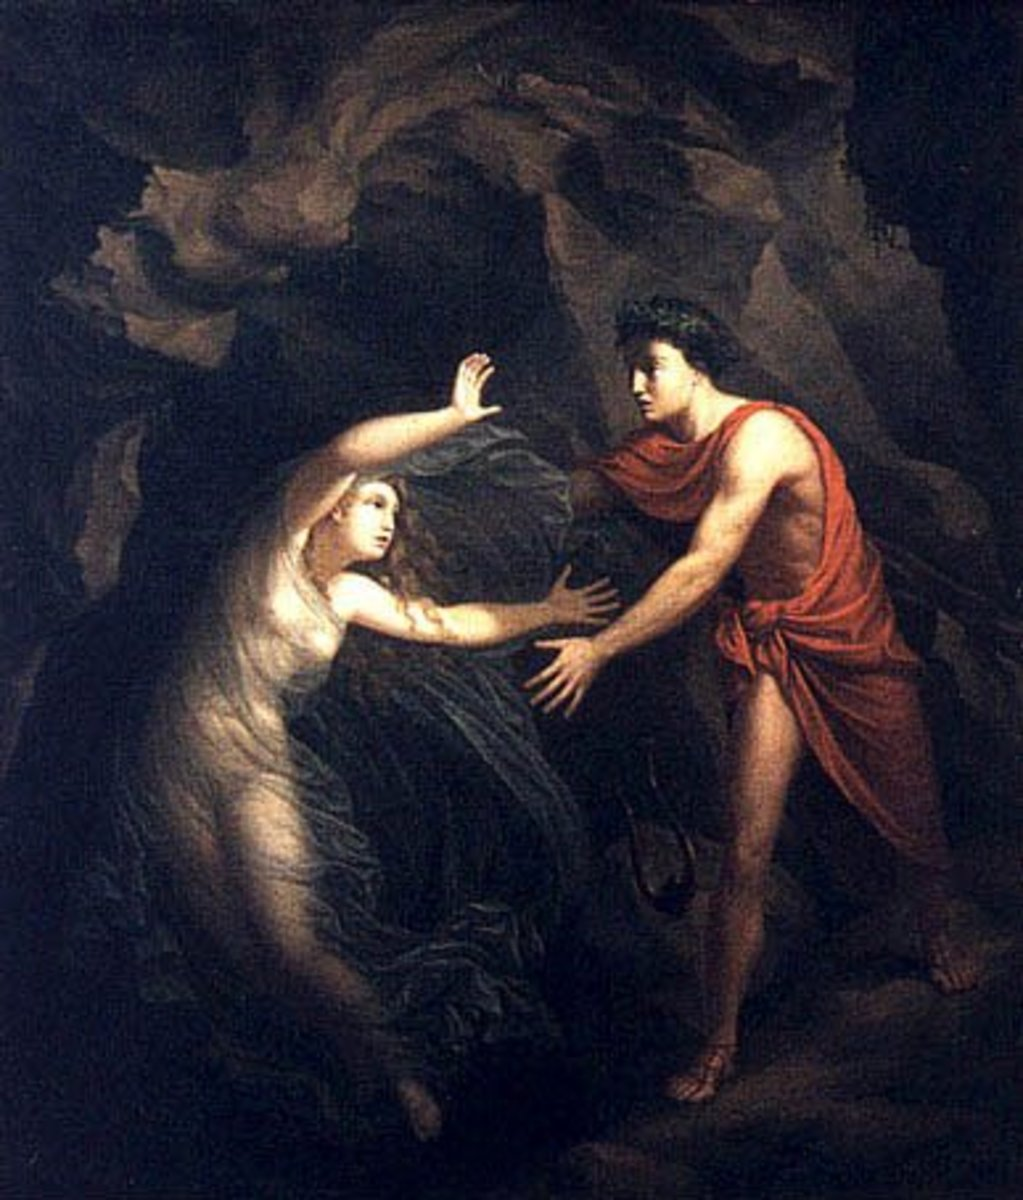 Greek Mythology: Orpheus and Eurydice